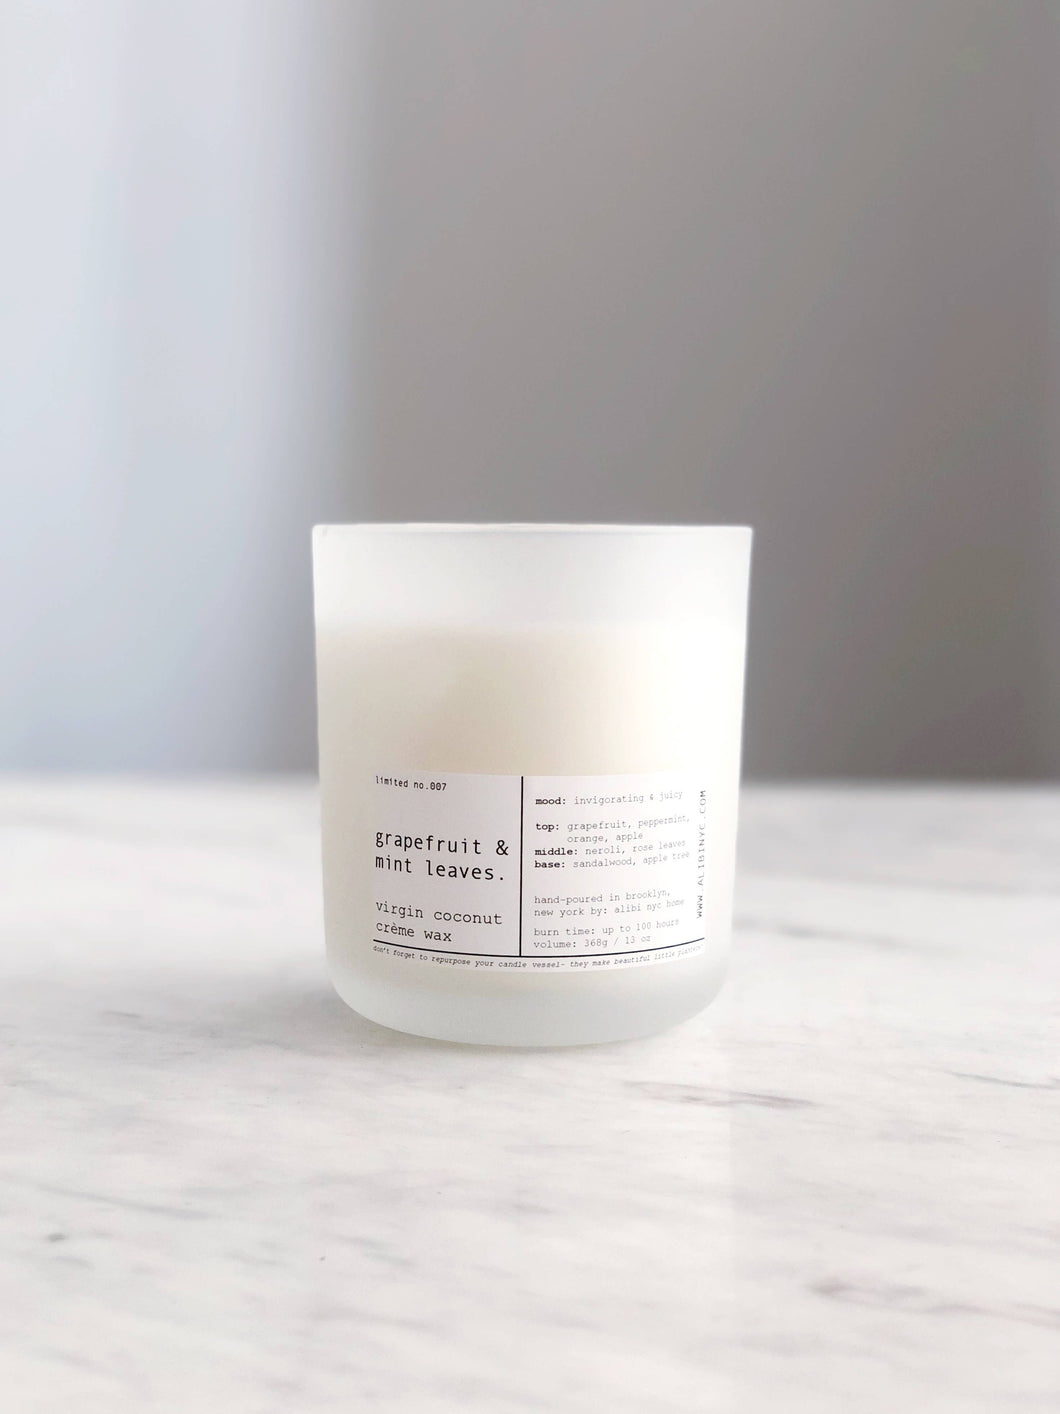 ALIBI NYC - GRAPEFRUIT & MINT LEAVES | VIRGIN COCONUT CRÈME CANDLE